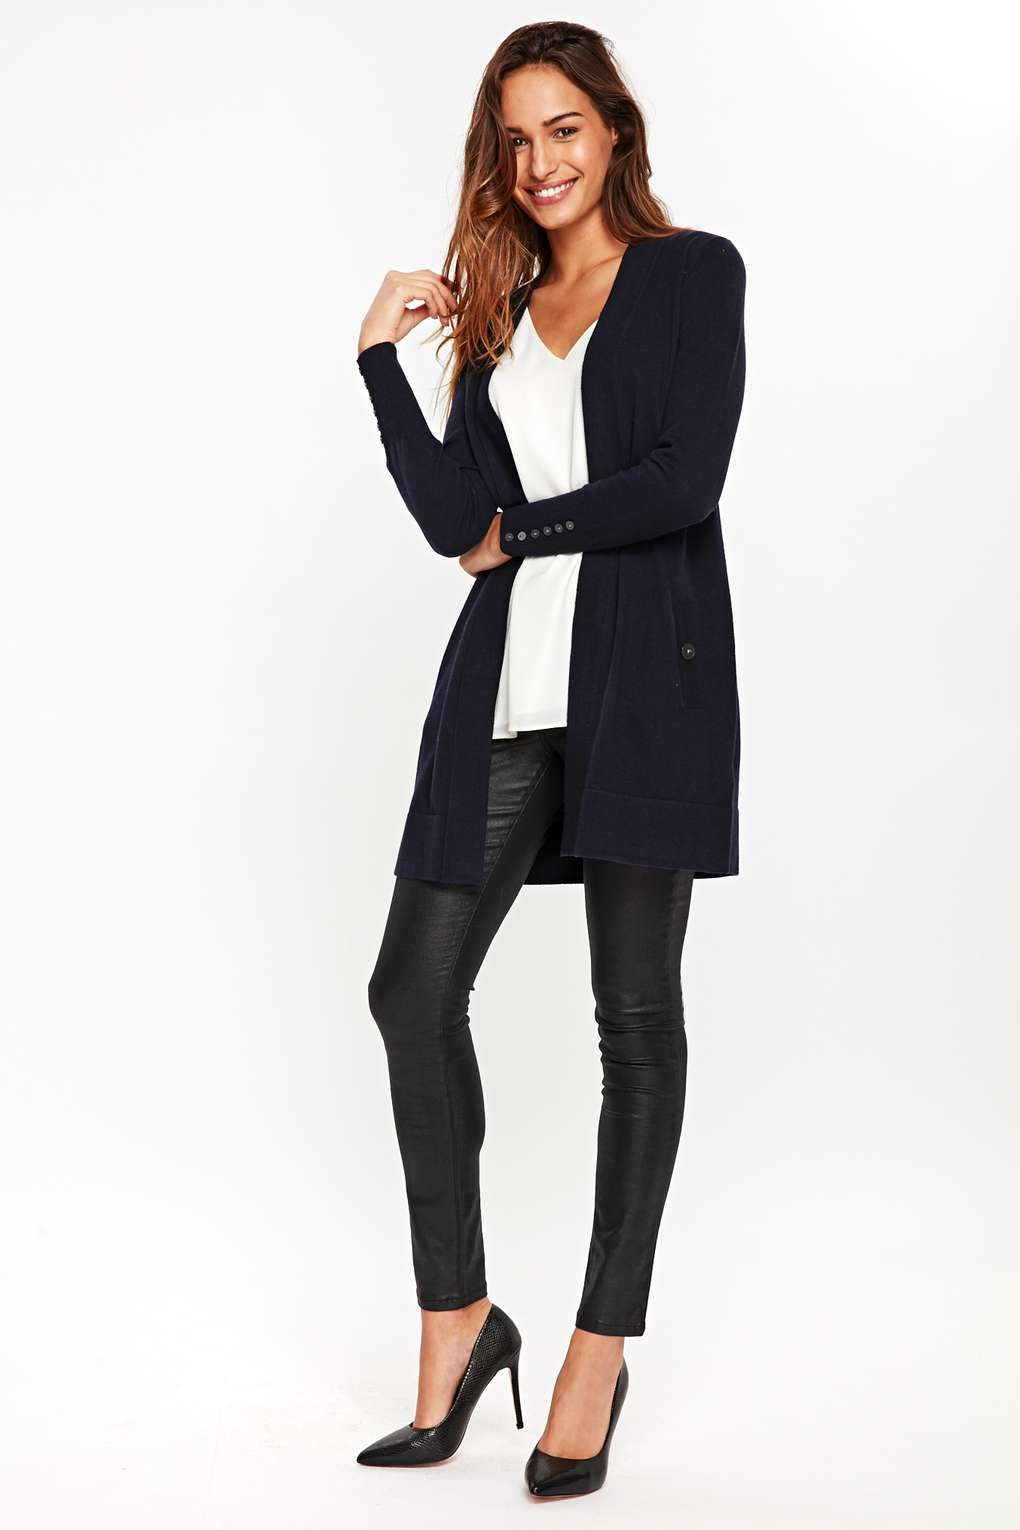 d05719f6a6 Wallis - Navy Longline Cardigan. Currently reduced from £33.00 to £26.40. A